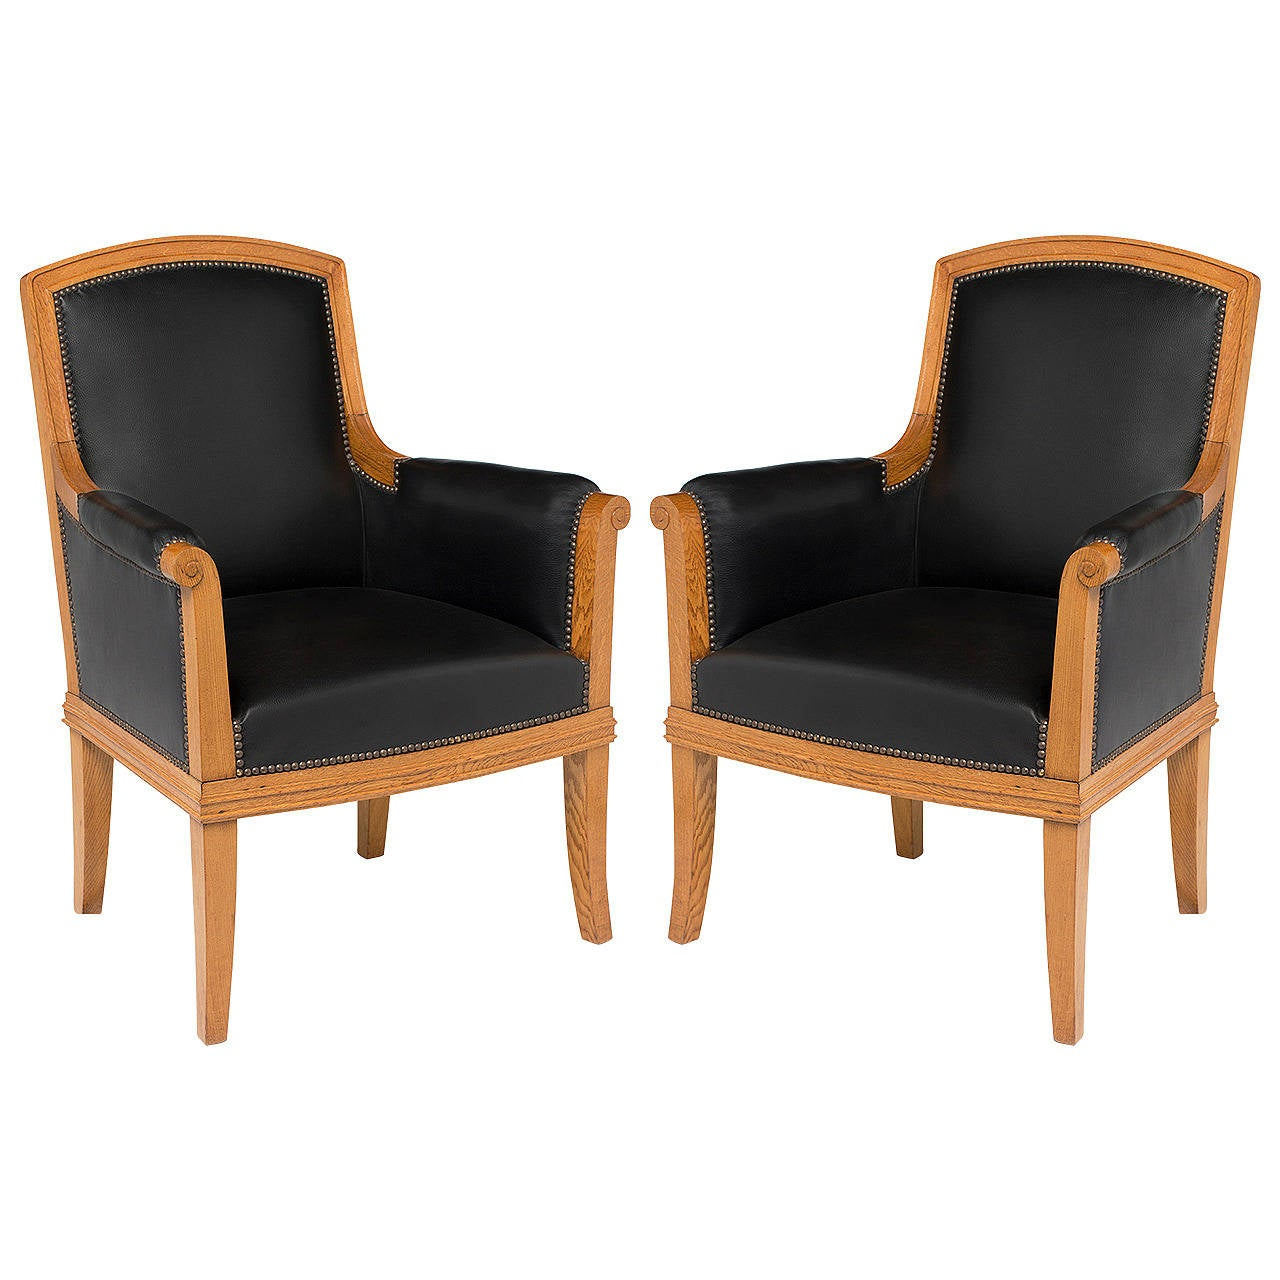 Louis Süe, Pair of Oak and Leather Armchairs, France, C. 1940